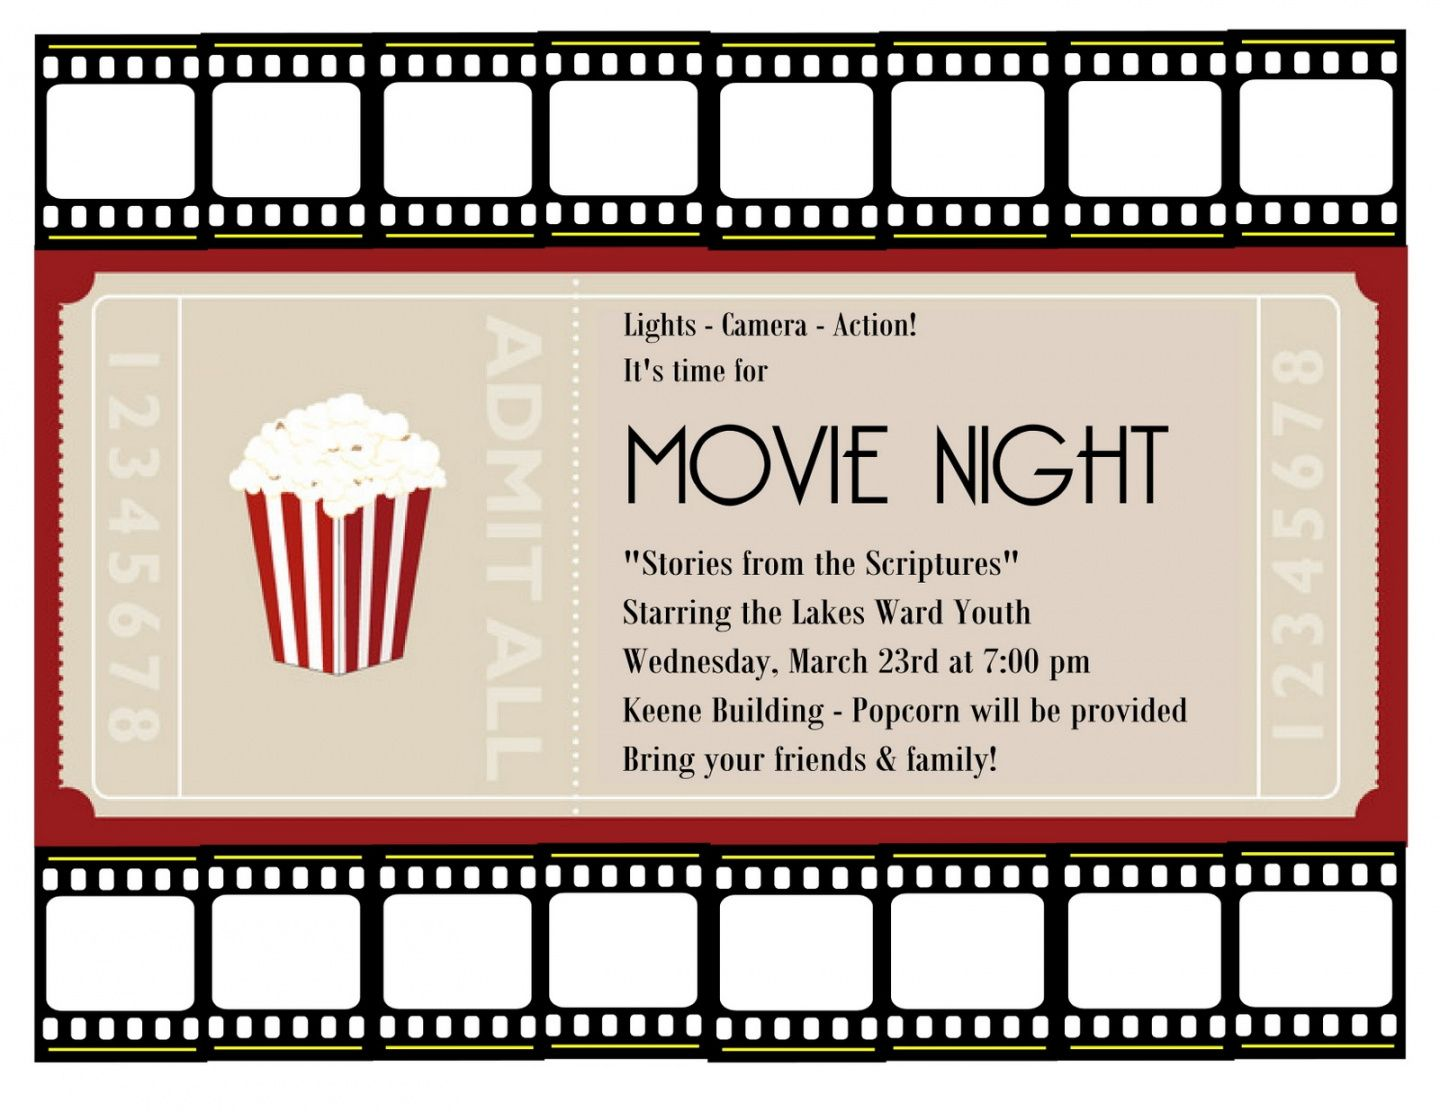 Costum Family Movie Night Flyer Template Doc Example